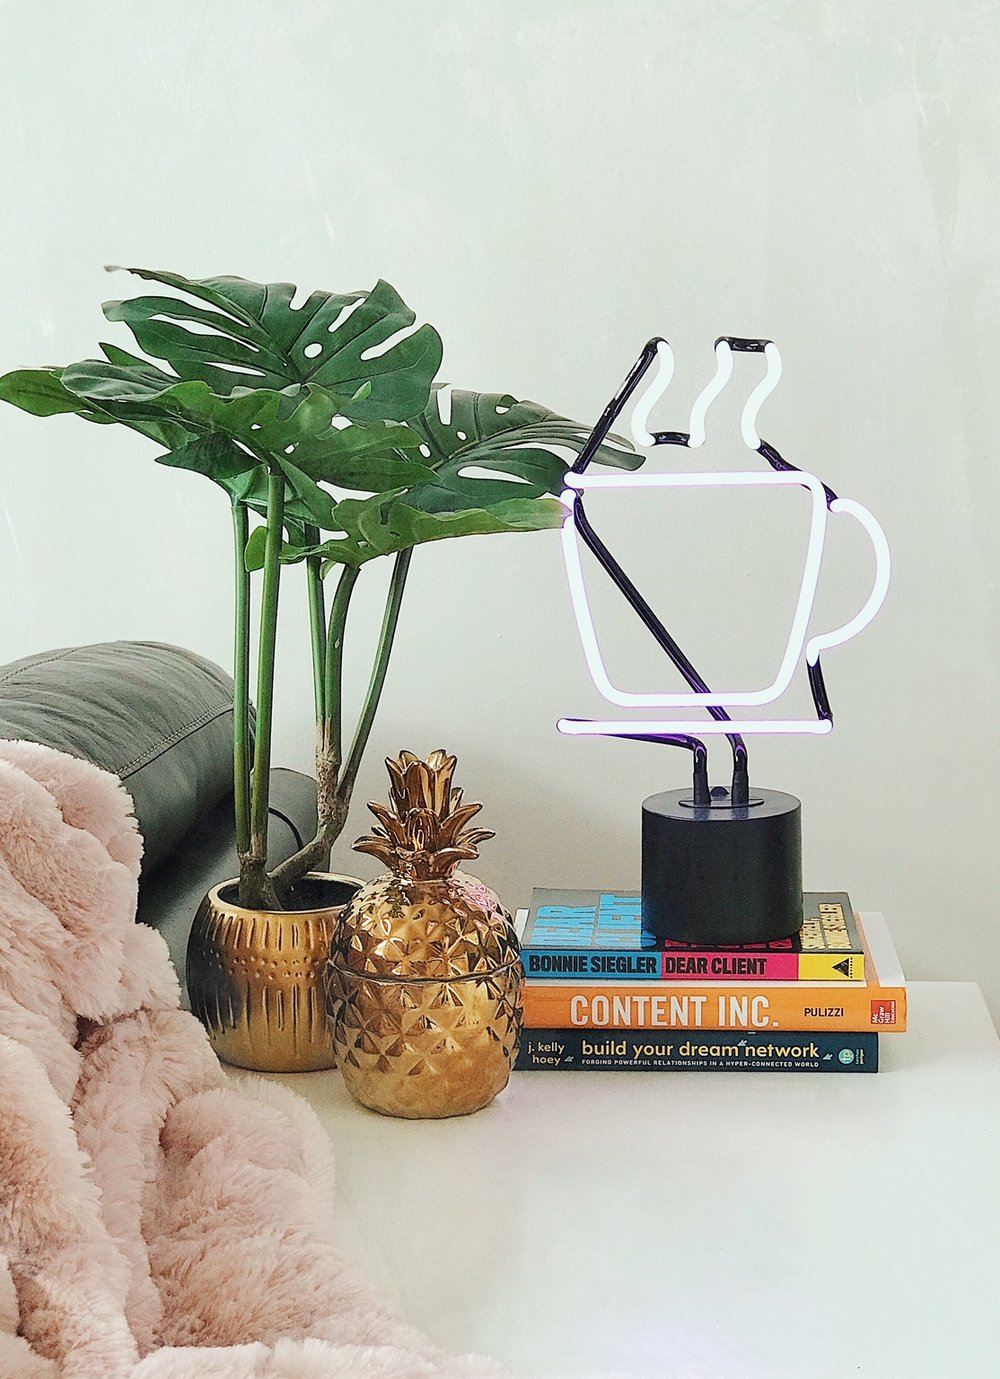 - I'm extremely obsessed with amped & co. and have TWO of their neon desk lamps. In my opinion, these lamps are the cutest and smallest way to jazz things up and elevate your space.